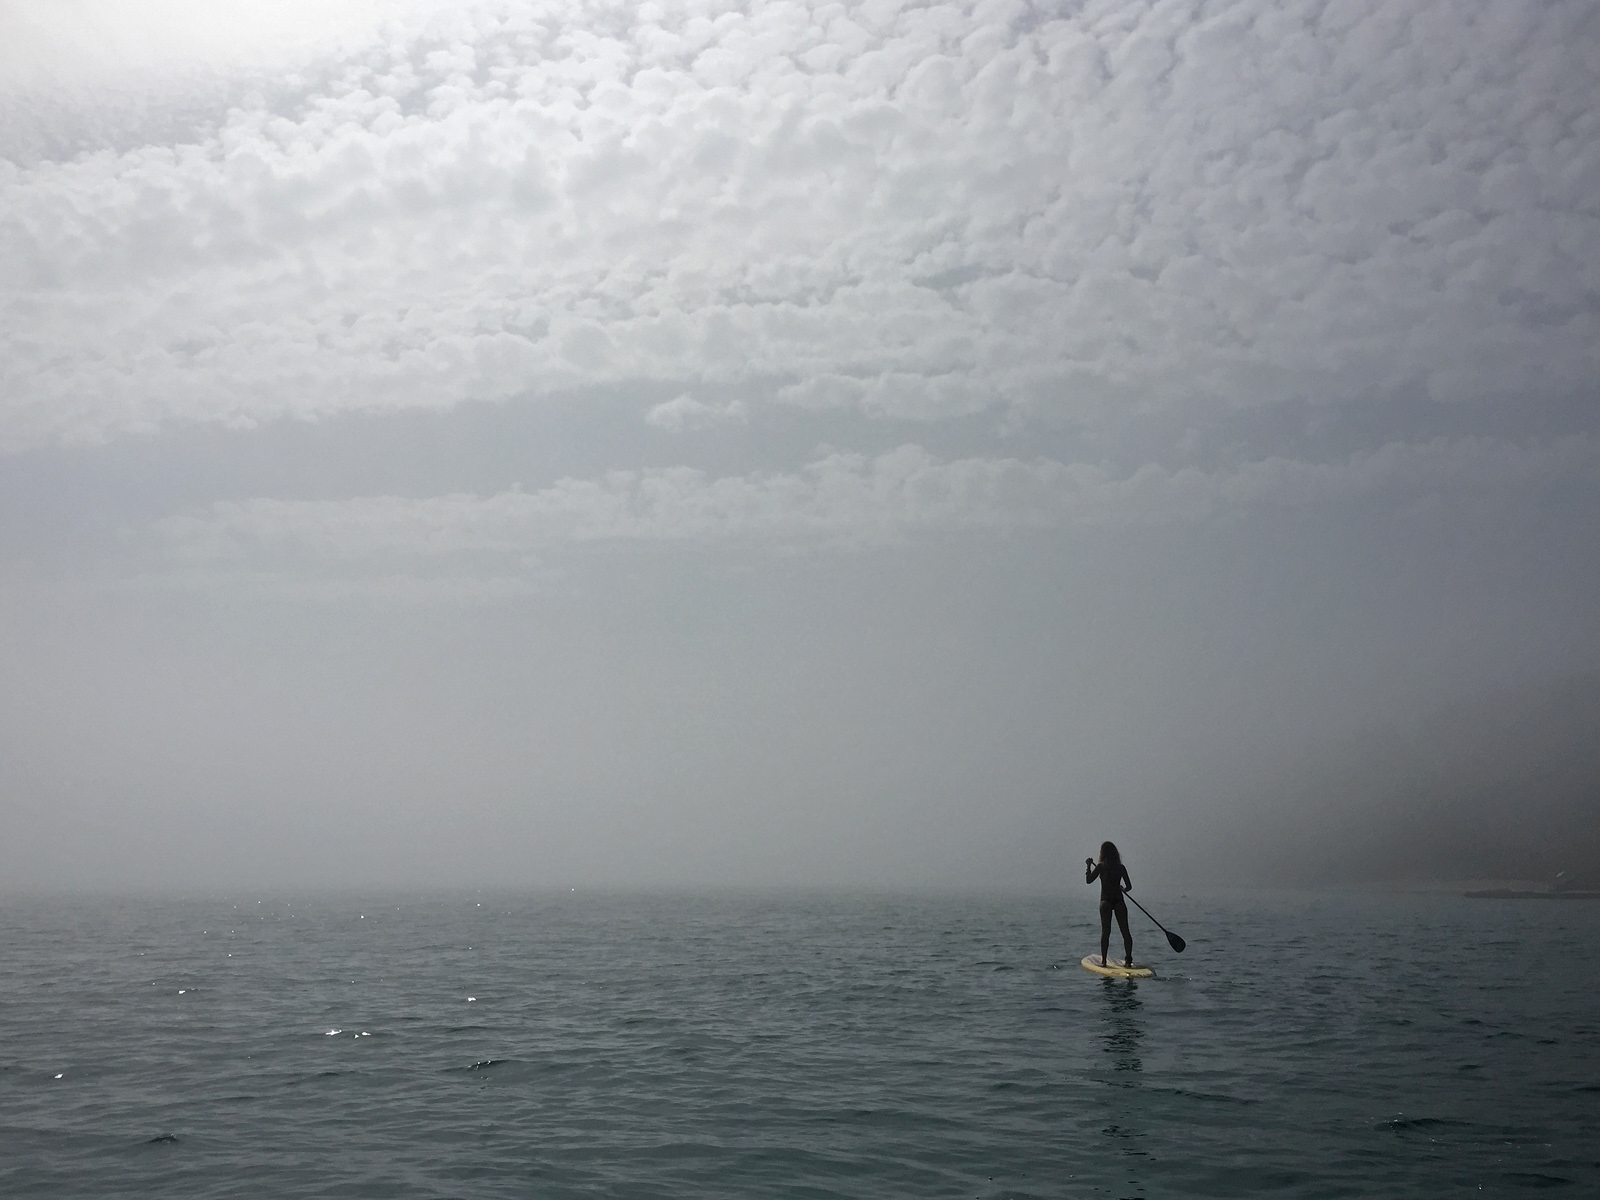 Paddleboarding in dense fog